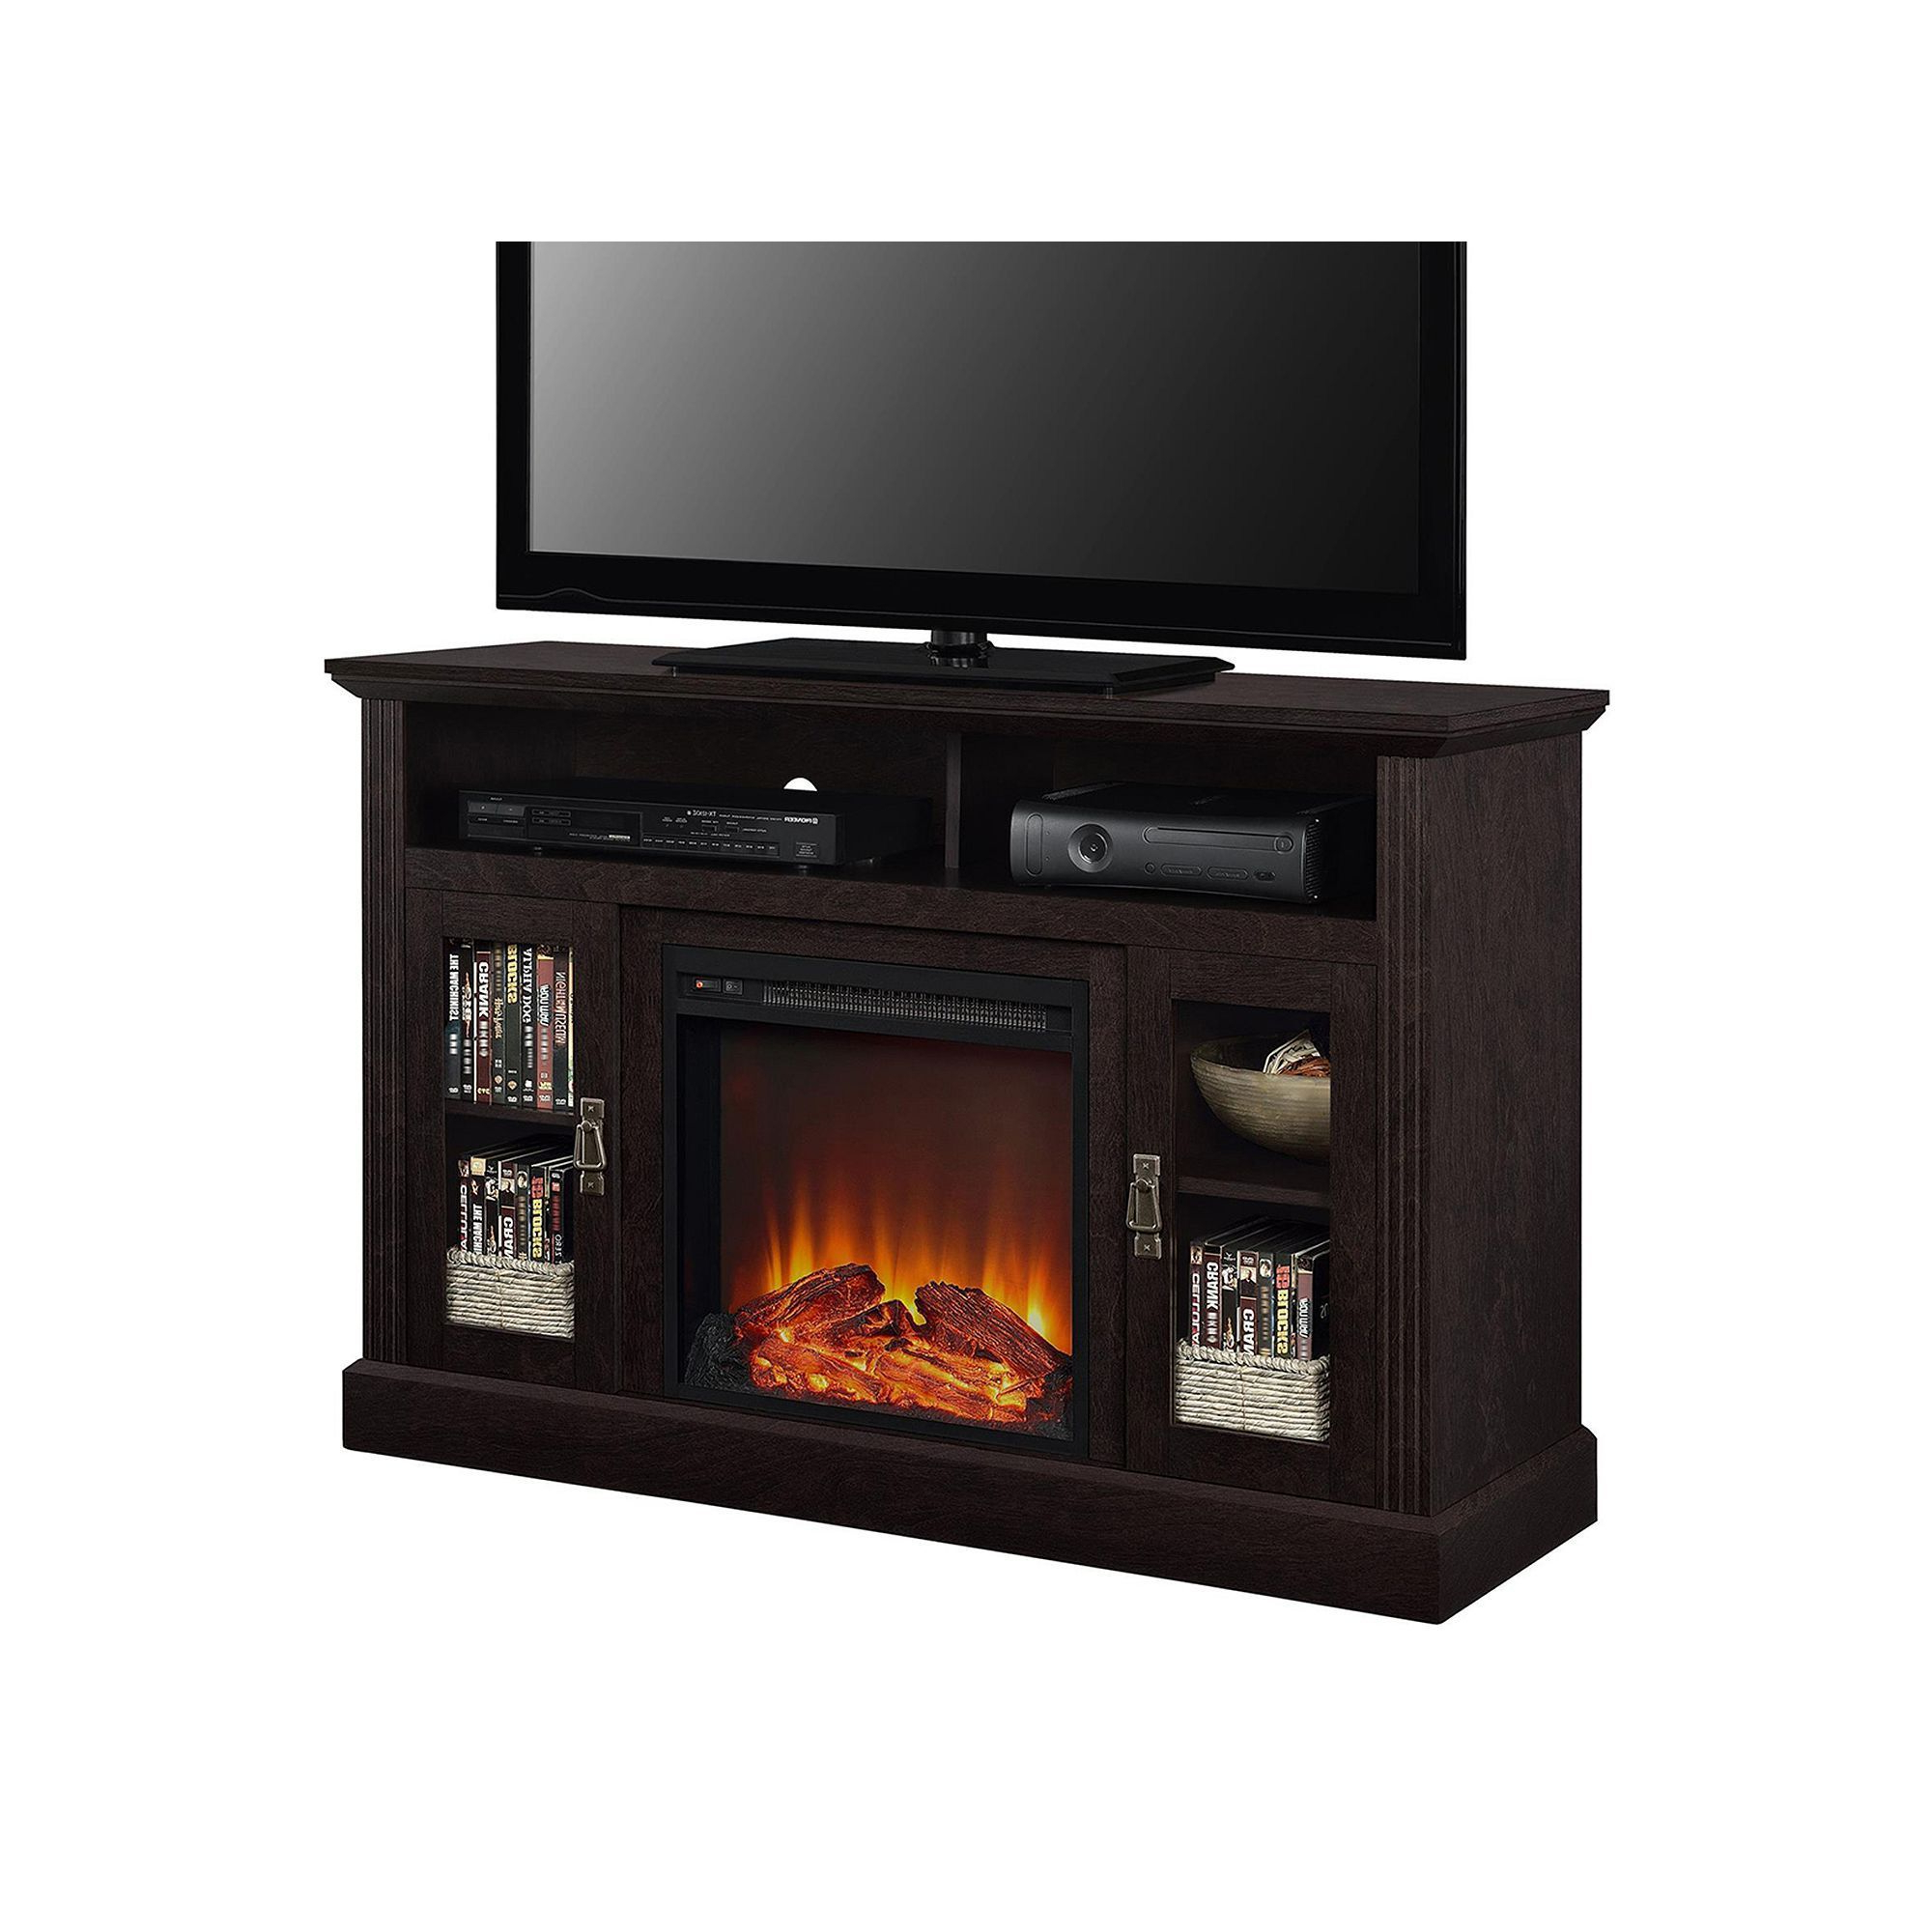 Altra Chicago Electric Fireplace Tv Stand, Brown (View 6 of 20)